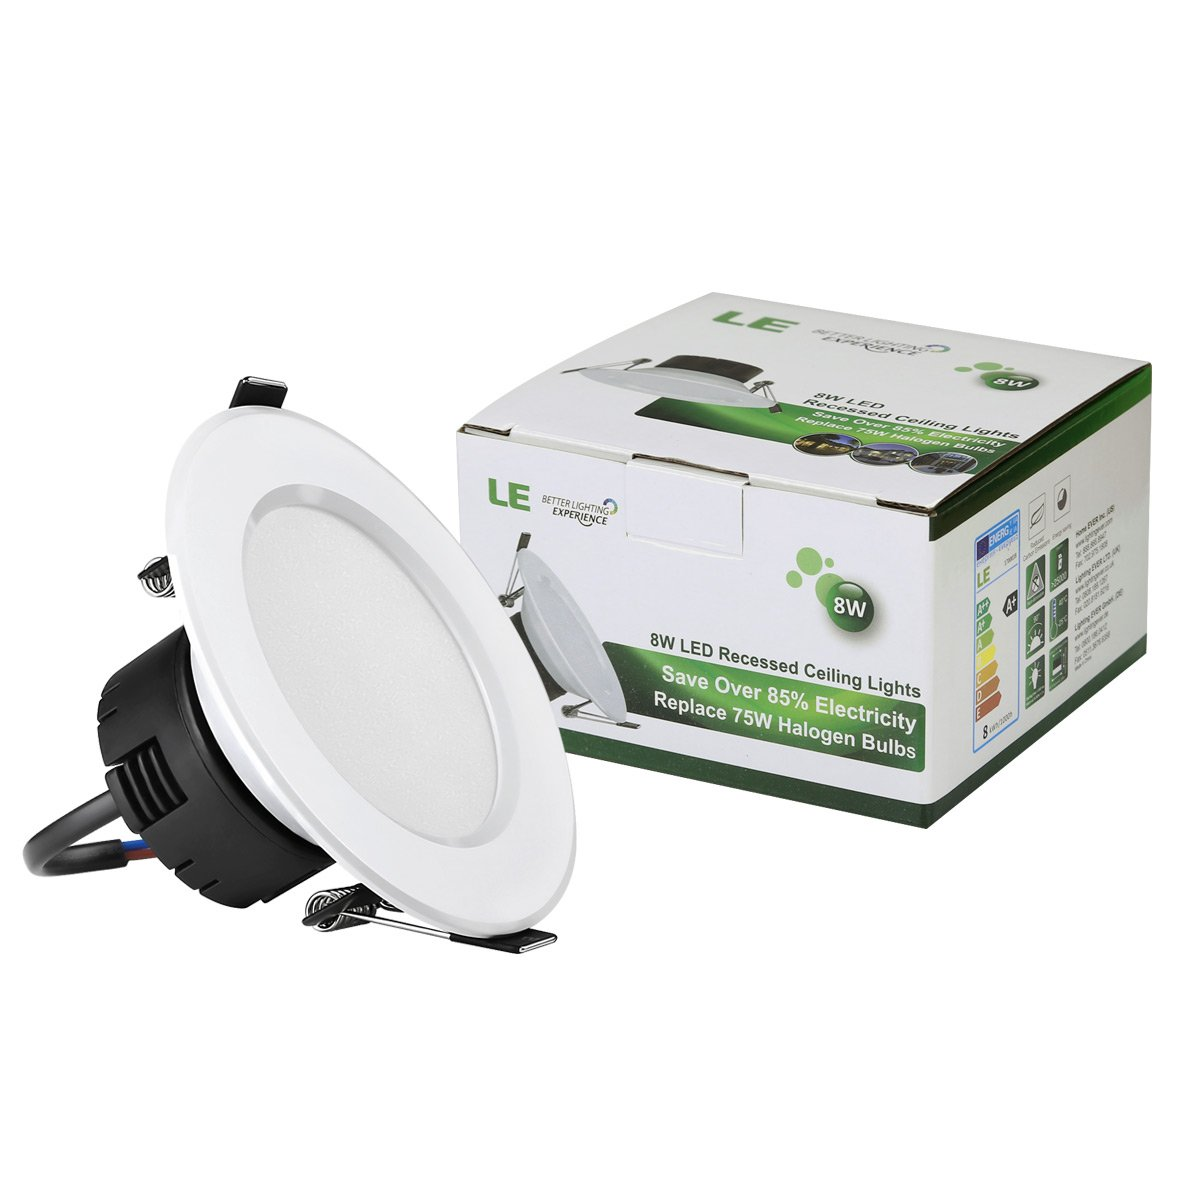 Le 8w 35 inch led recessed lighting 75w halogen bulbs equivalent le 8w 35 inch led recessed lighting 75w halogen bulbs equivalent not dimmable led driver included 400lm warm white 3000k 90 beam angle aloadofball Images